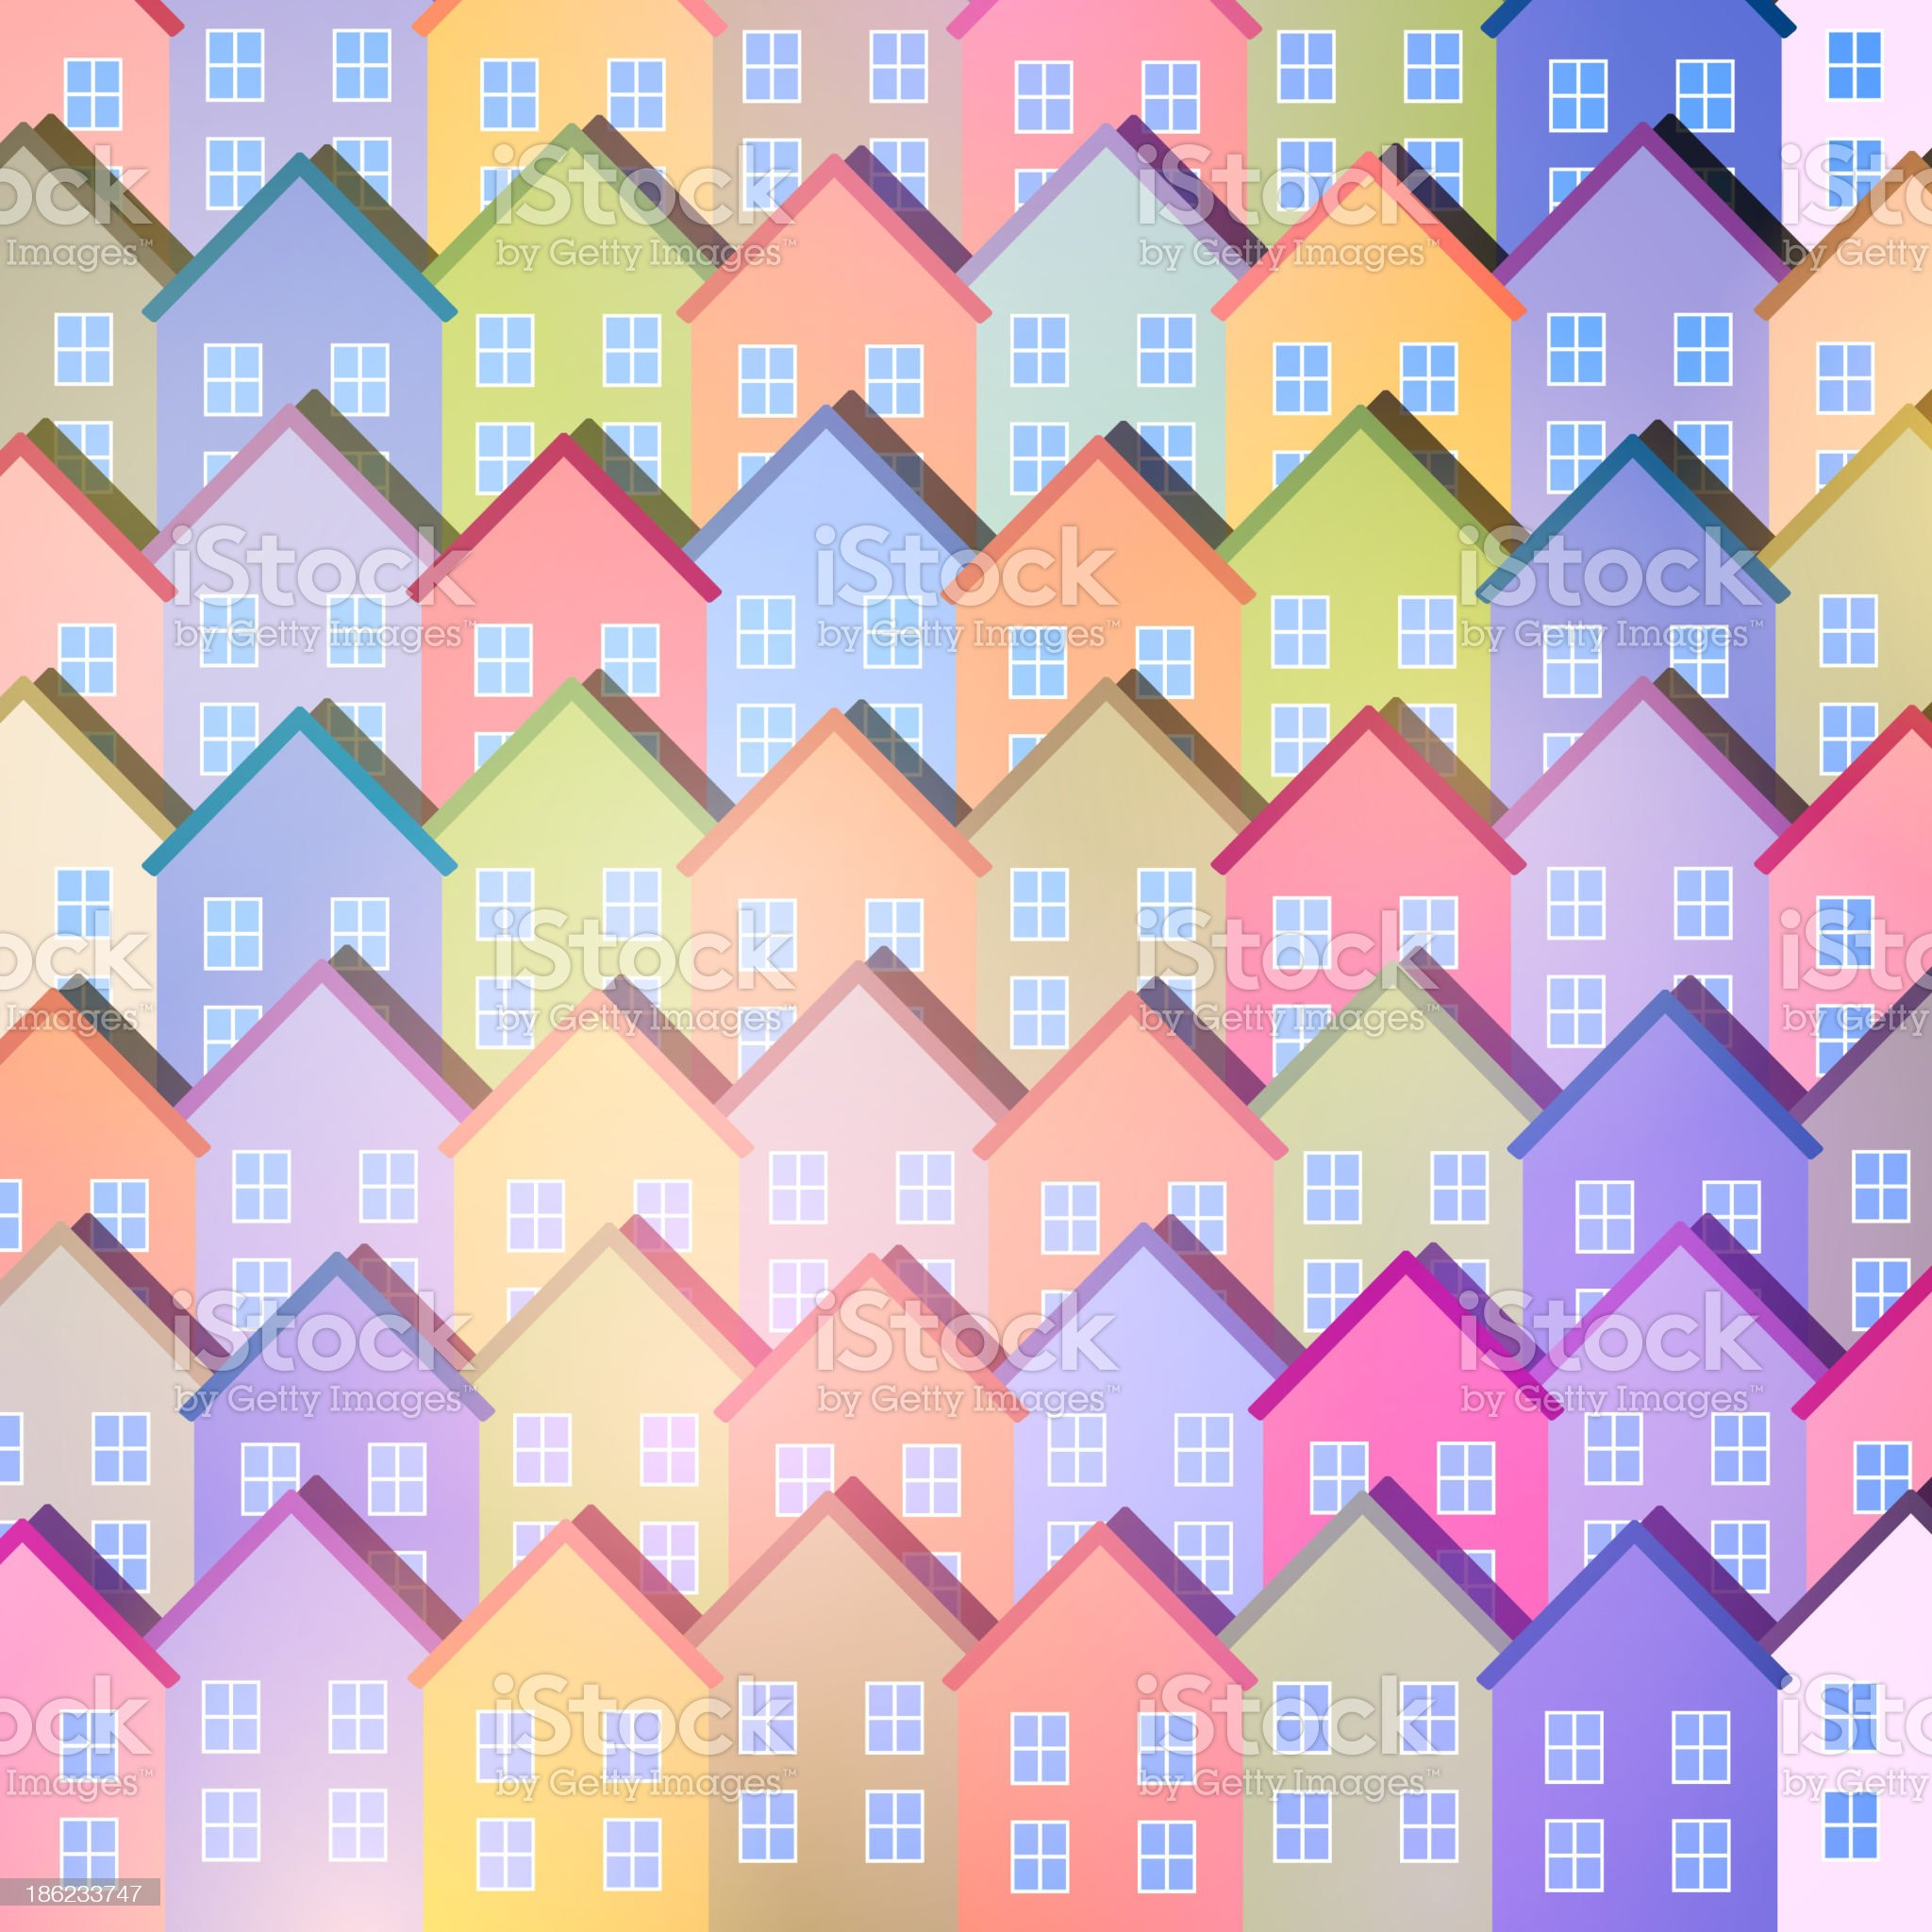 Abstract Vector Background with Paper Houses royalty-free stock vector art